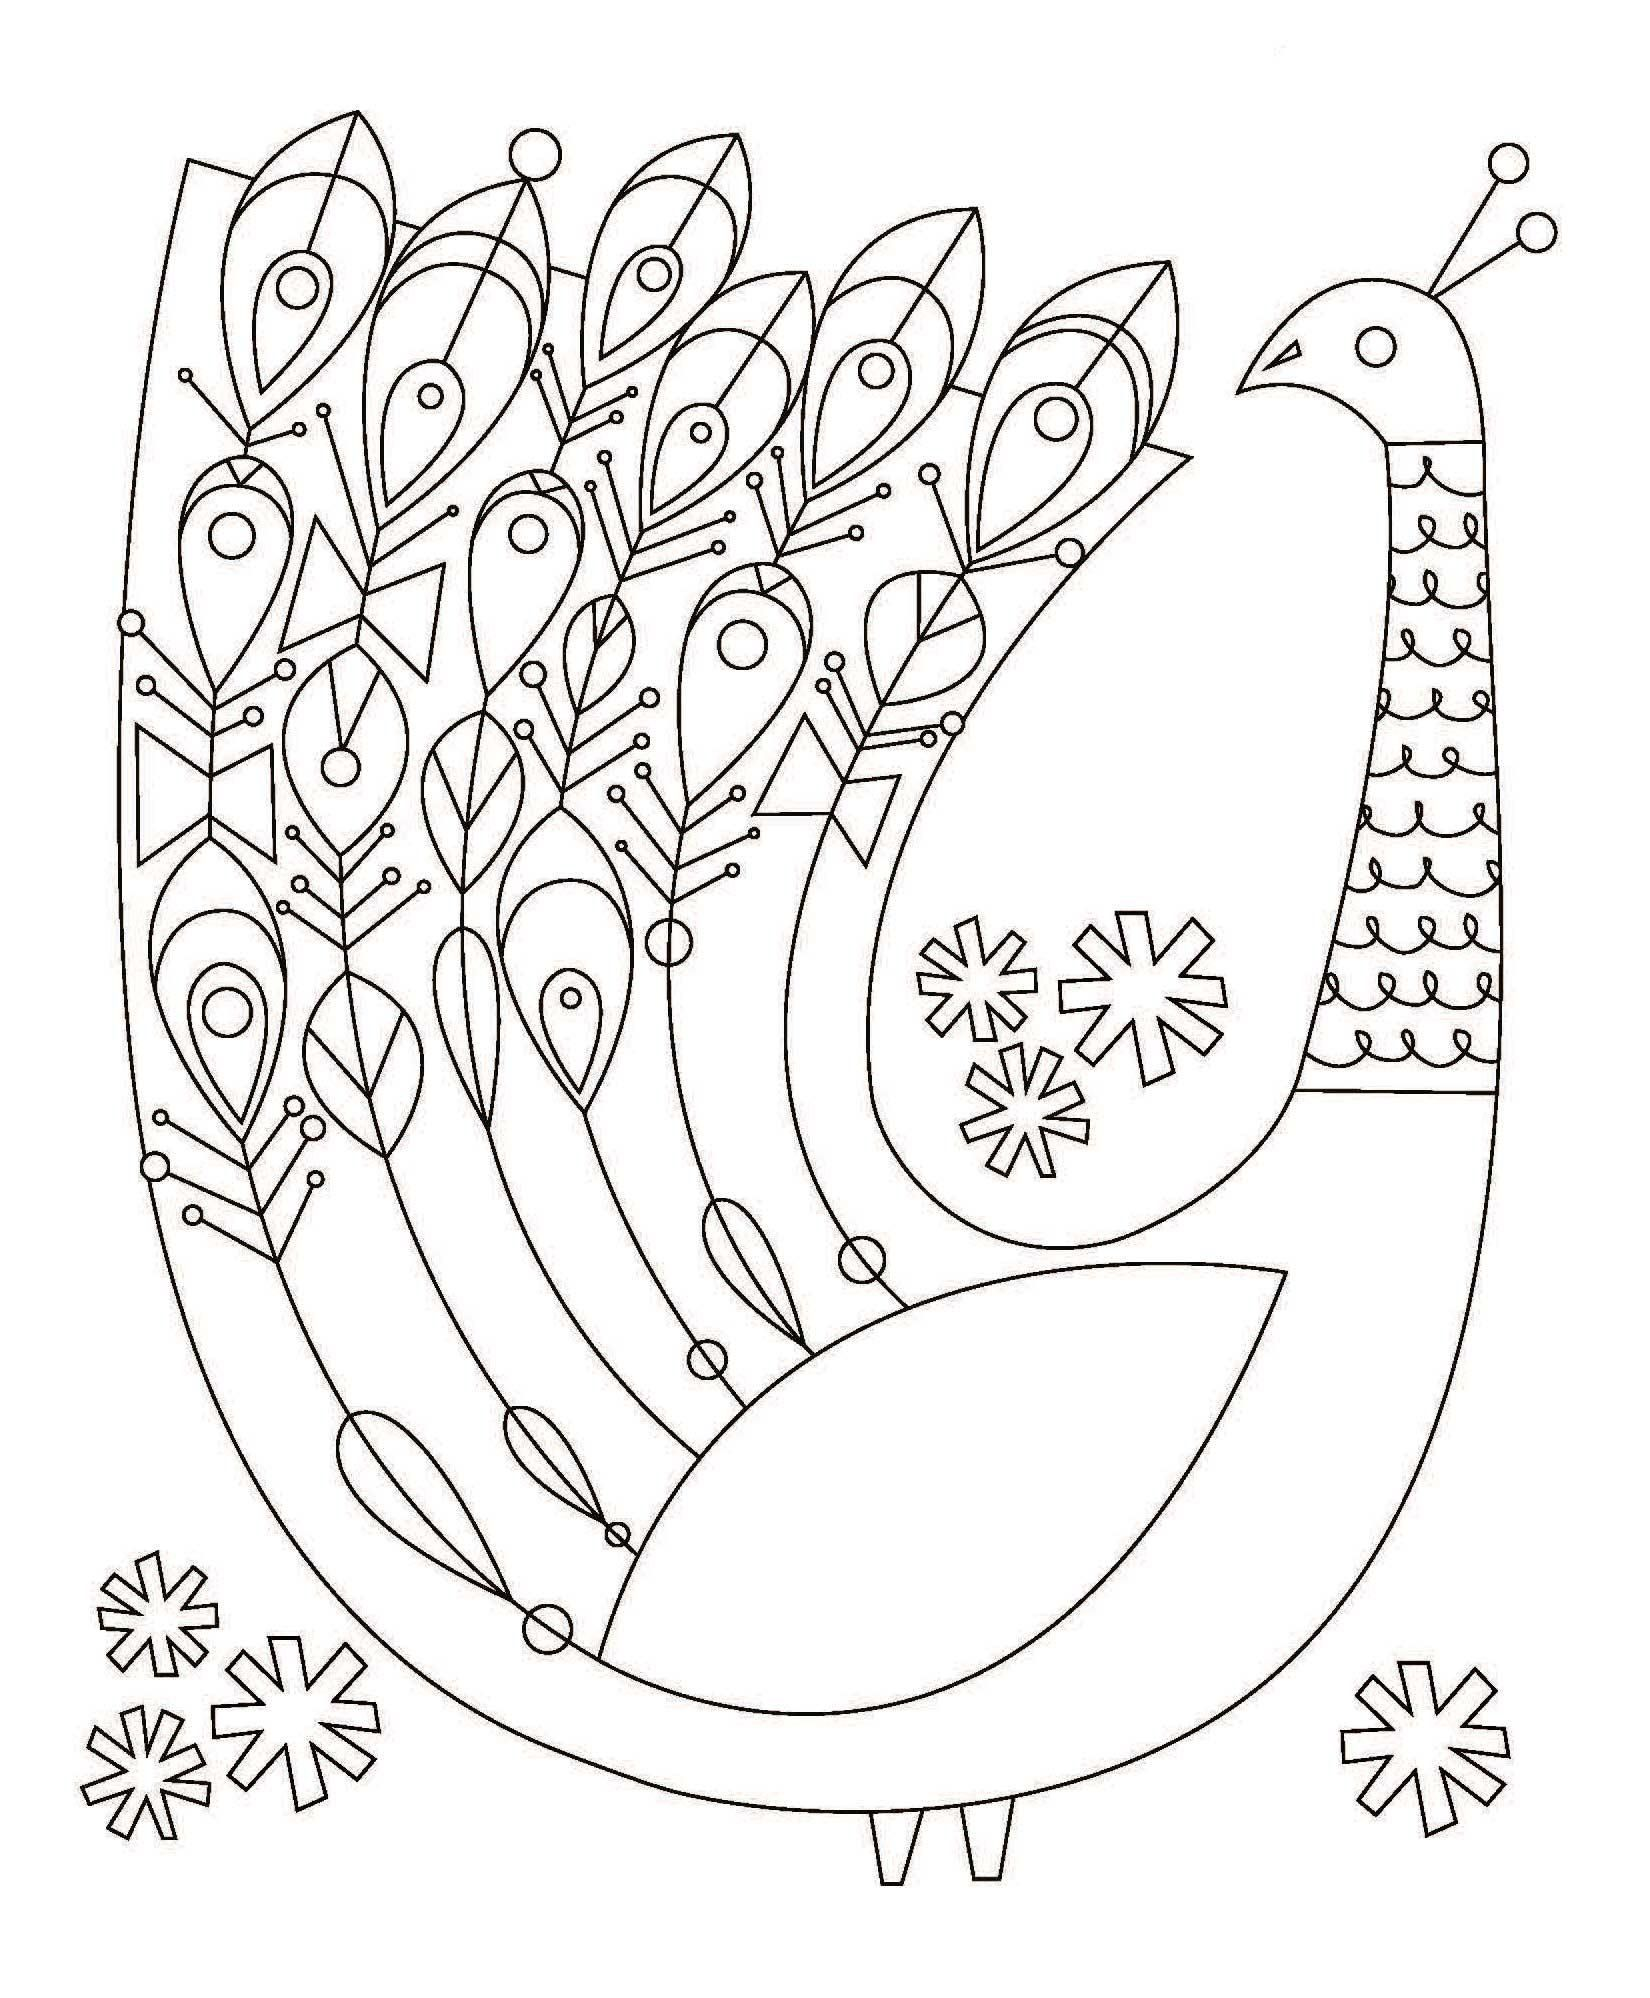 Folk Art Coloring Books : coloring, books, Color, African, Coloring, Pages, Floral, Embroidery, Patterns,, Embroidery,, Patterns